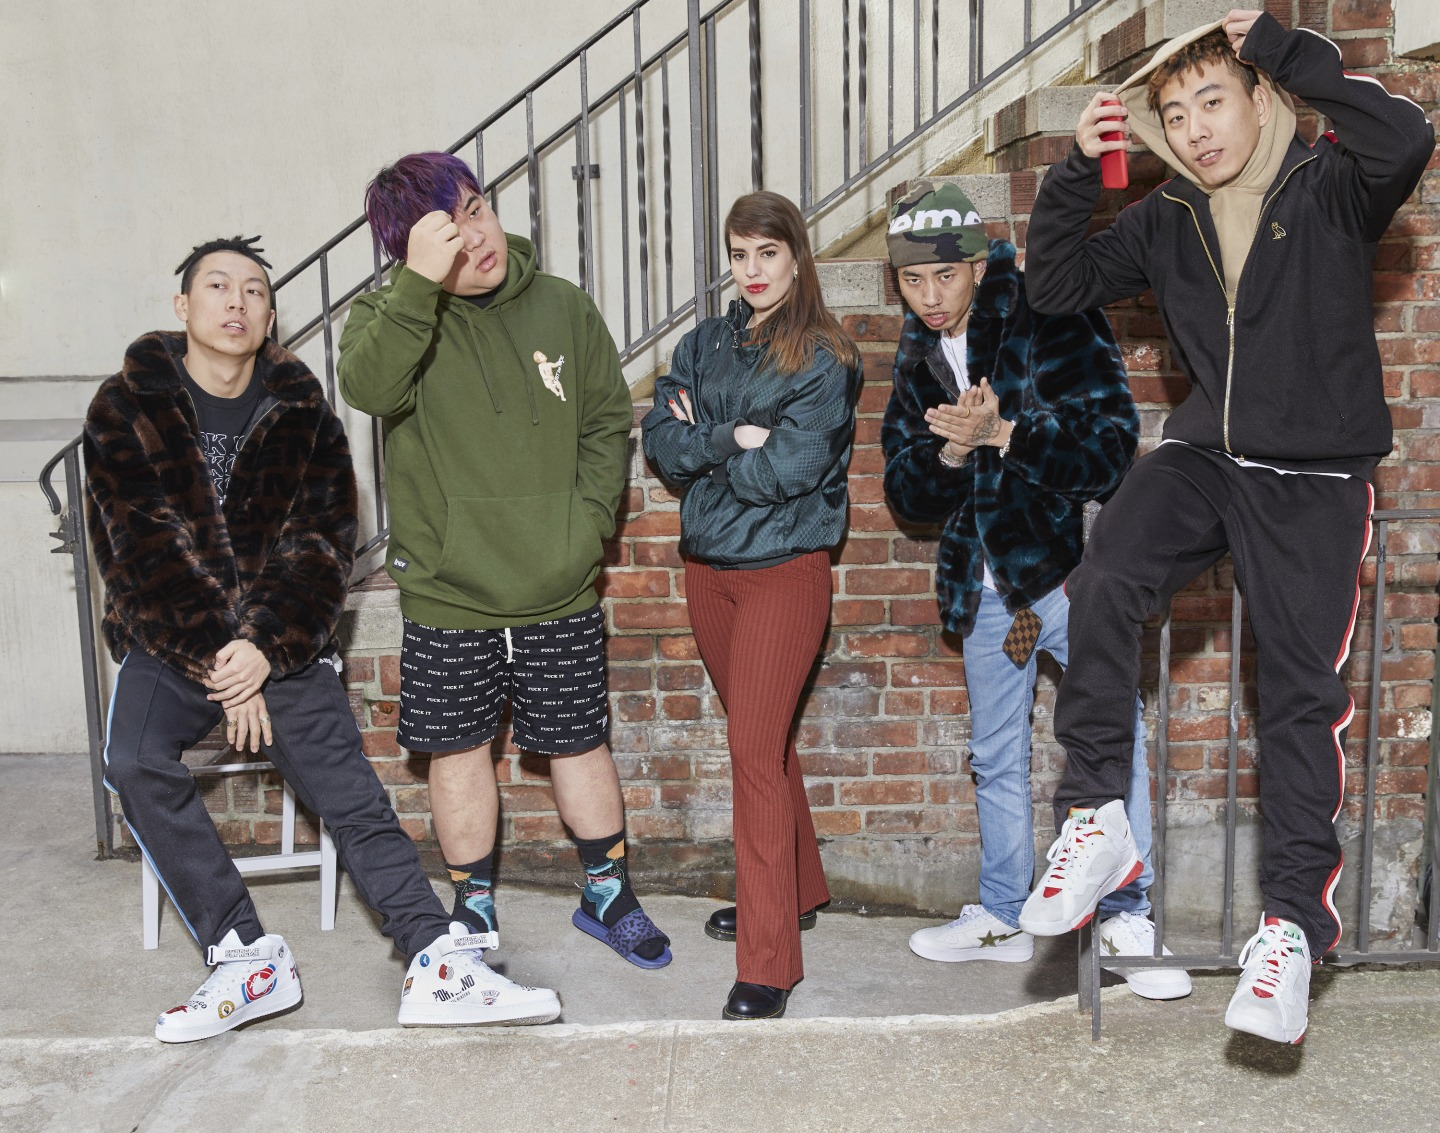 Meet Lana Larkin, the woman behind Higher Brothers's global crossover